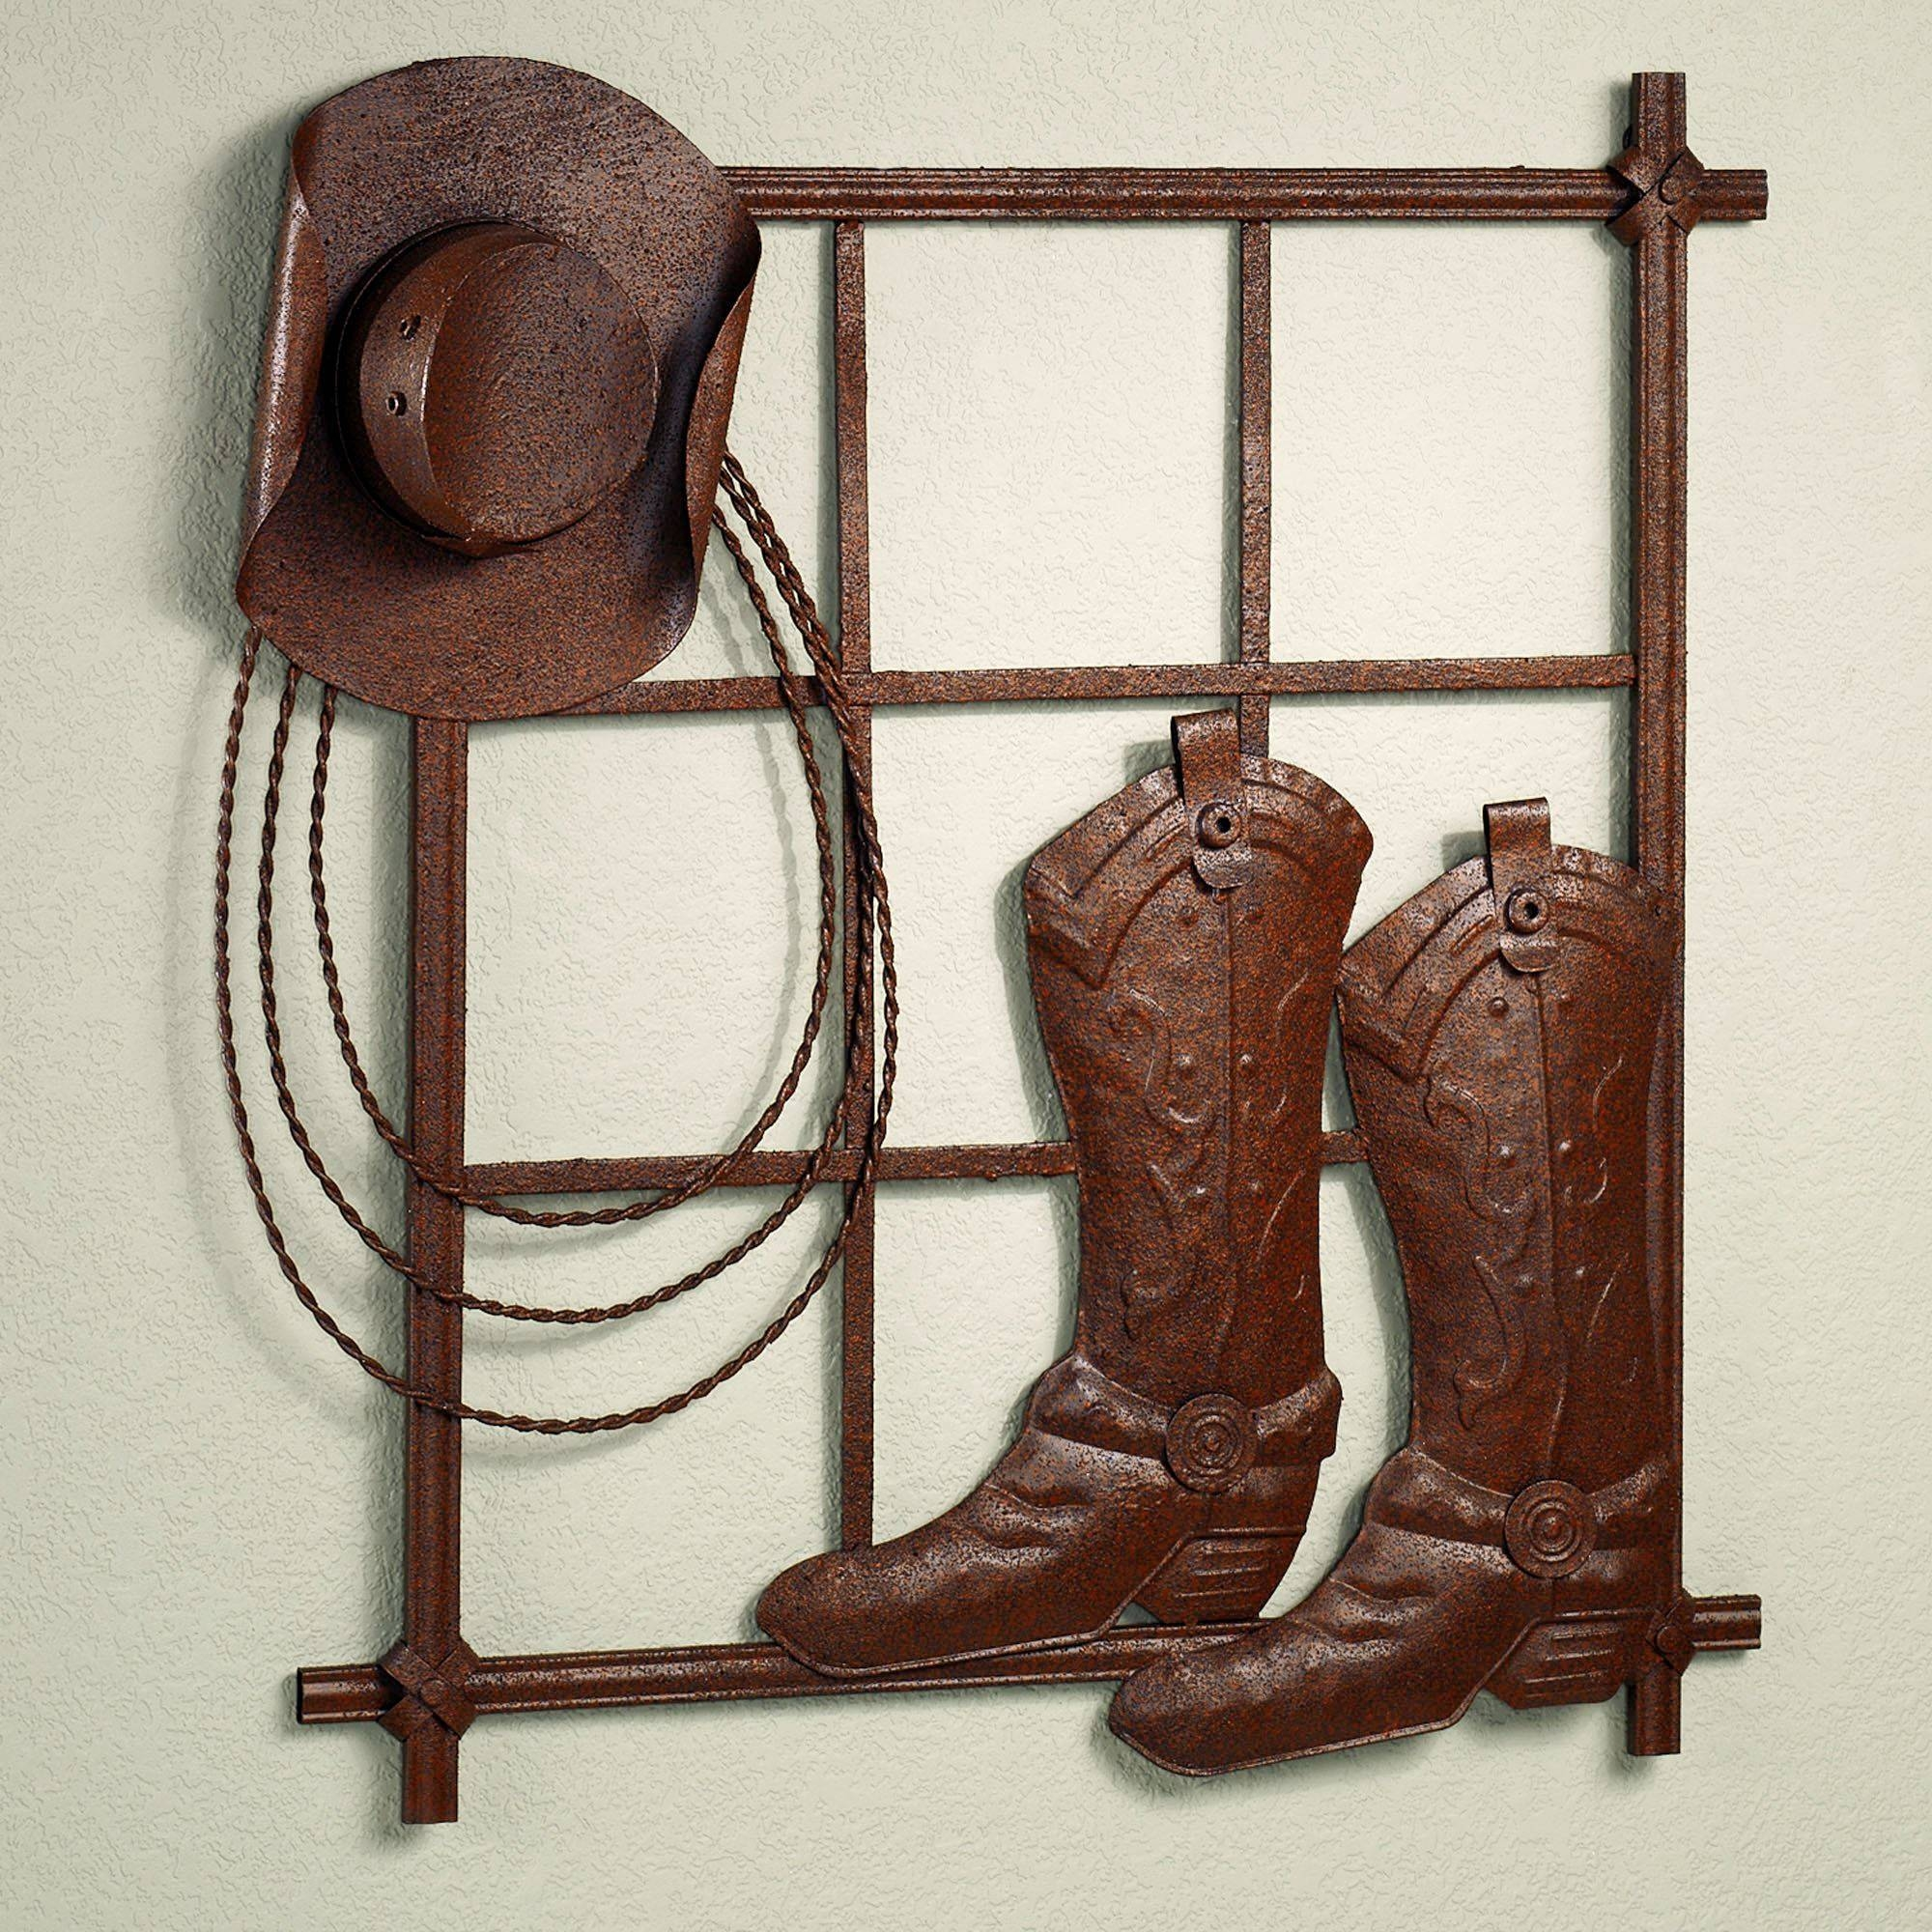 Western Ranch Themed Home Decor | Touch Of Class Within Latest Cowboy Metal Wall Art (View 20 of 20)